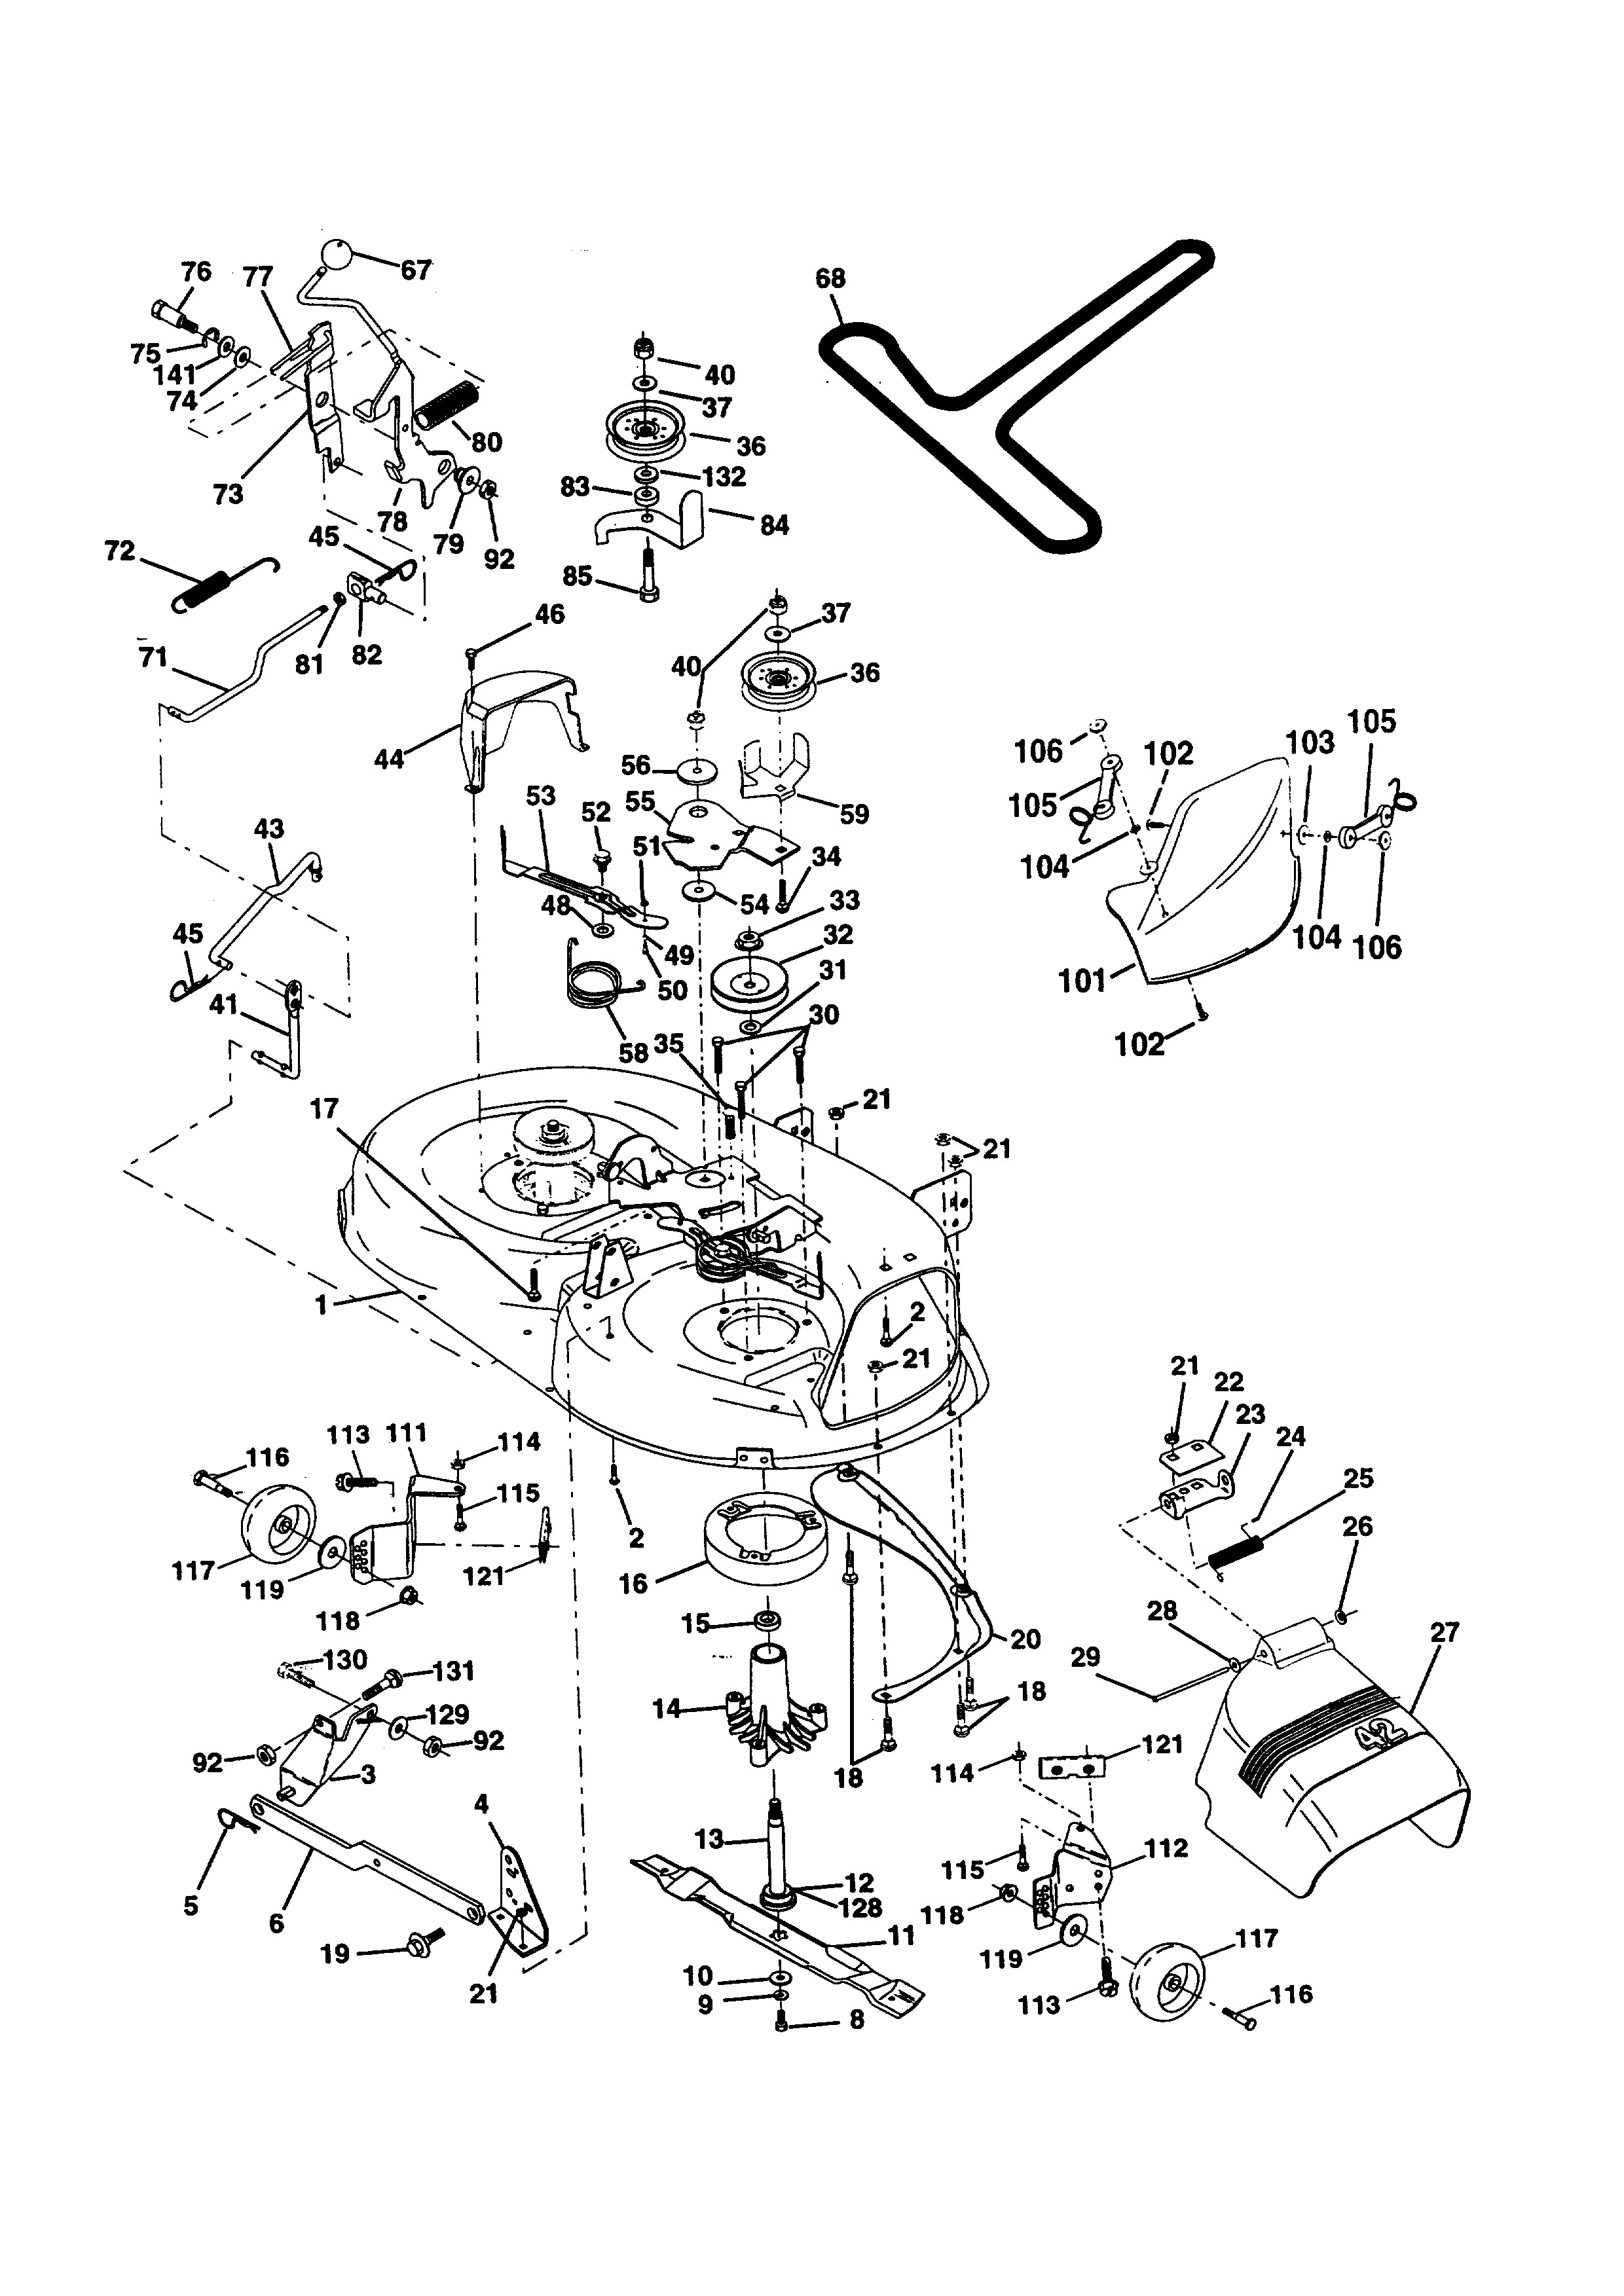 Craftsman Riding Lawn Mower Parts Diagram Western Auto Model Ayp9187b89 Lawn Tractor Genuine Parts Of Craftsman Riding Lawn Mower Parts Diagram